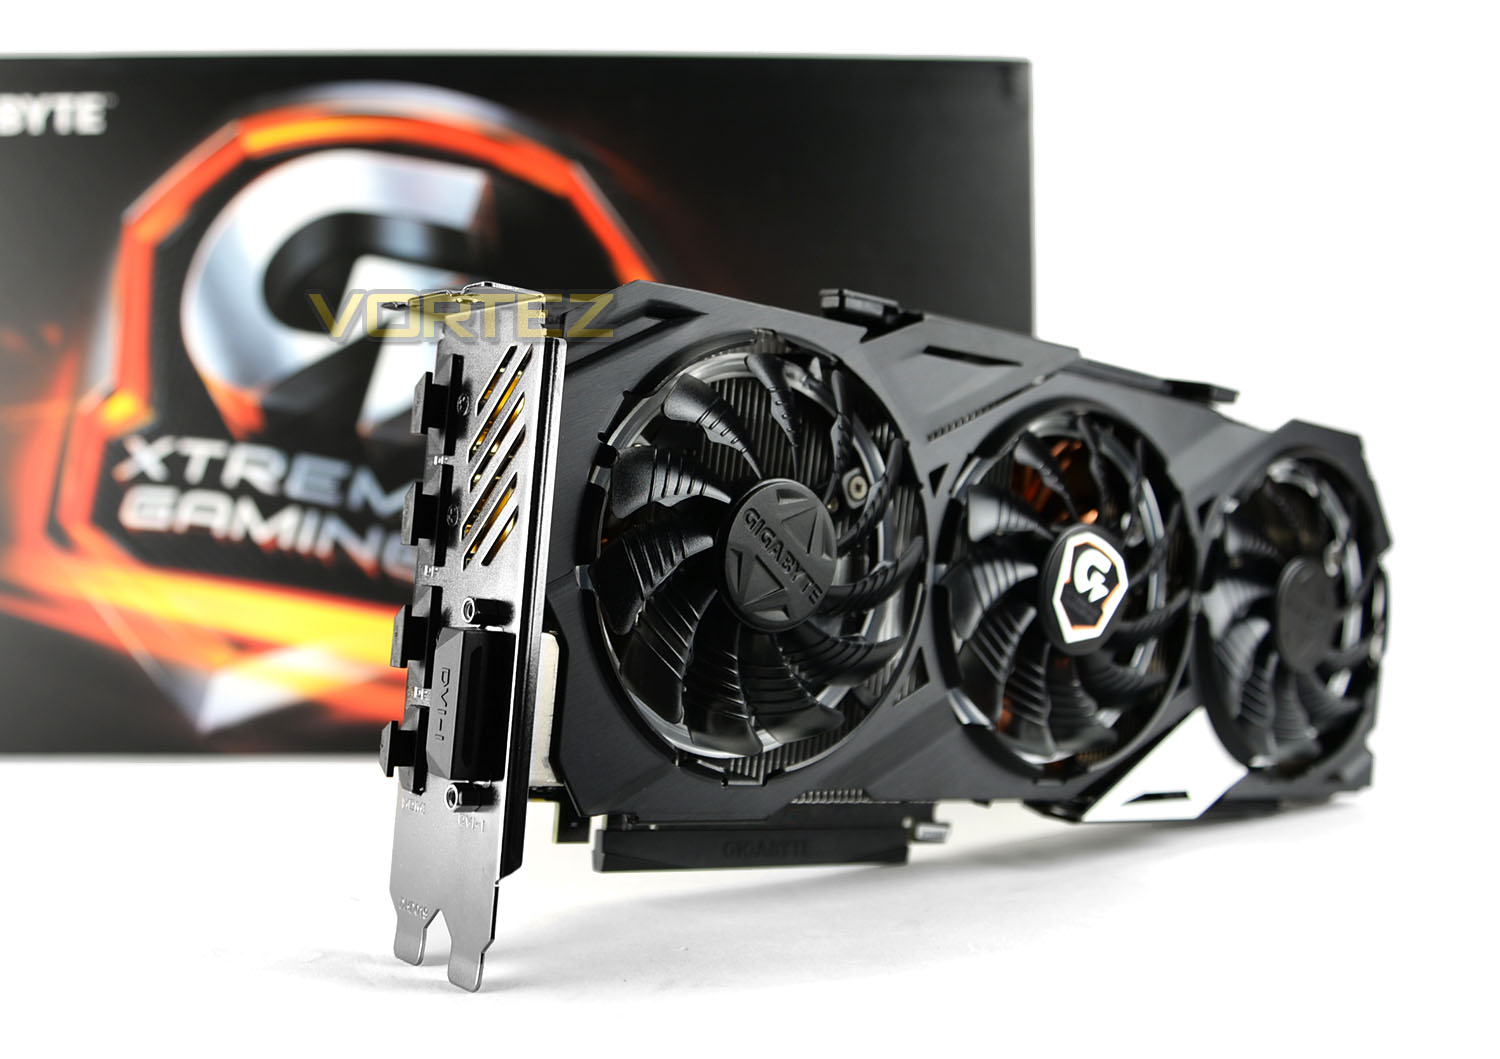 Gigabyte Gtx 970 Xtreme Gaming Review Introduction